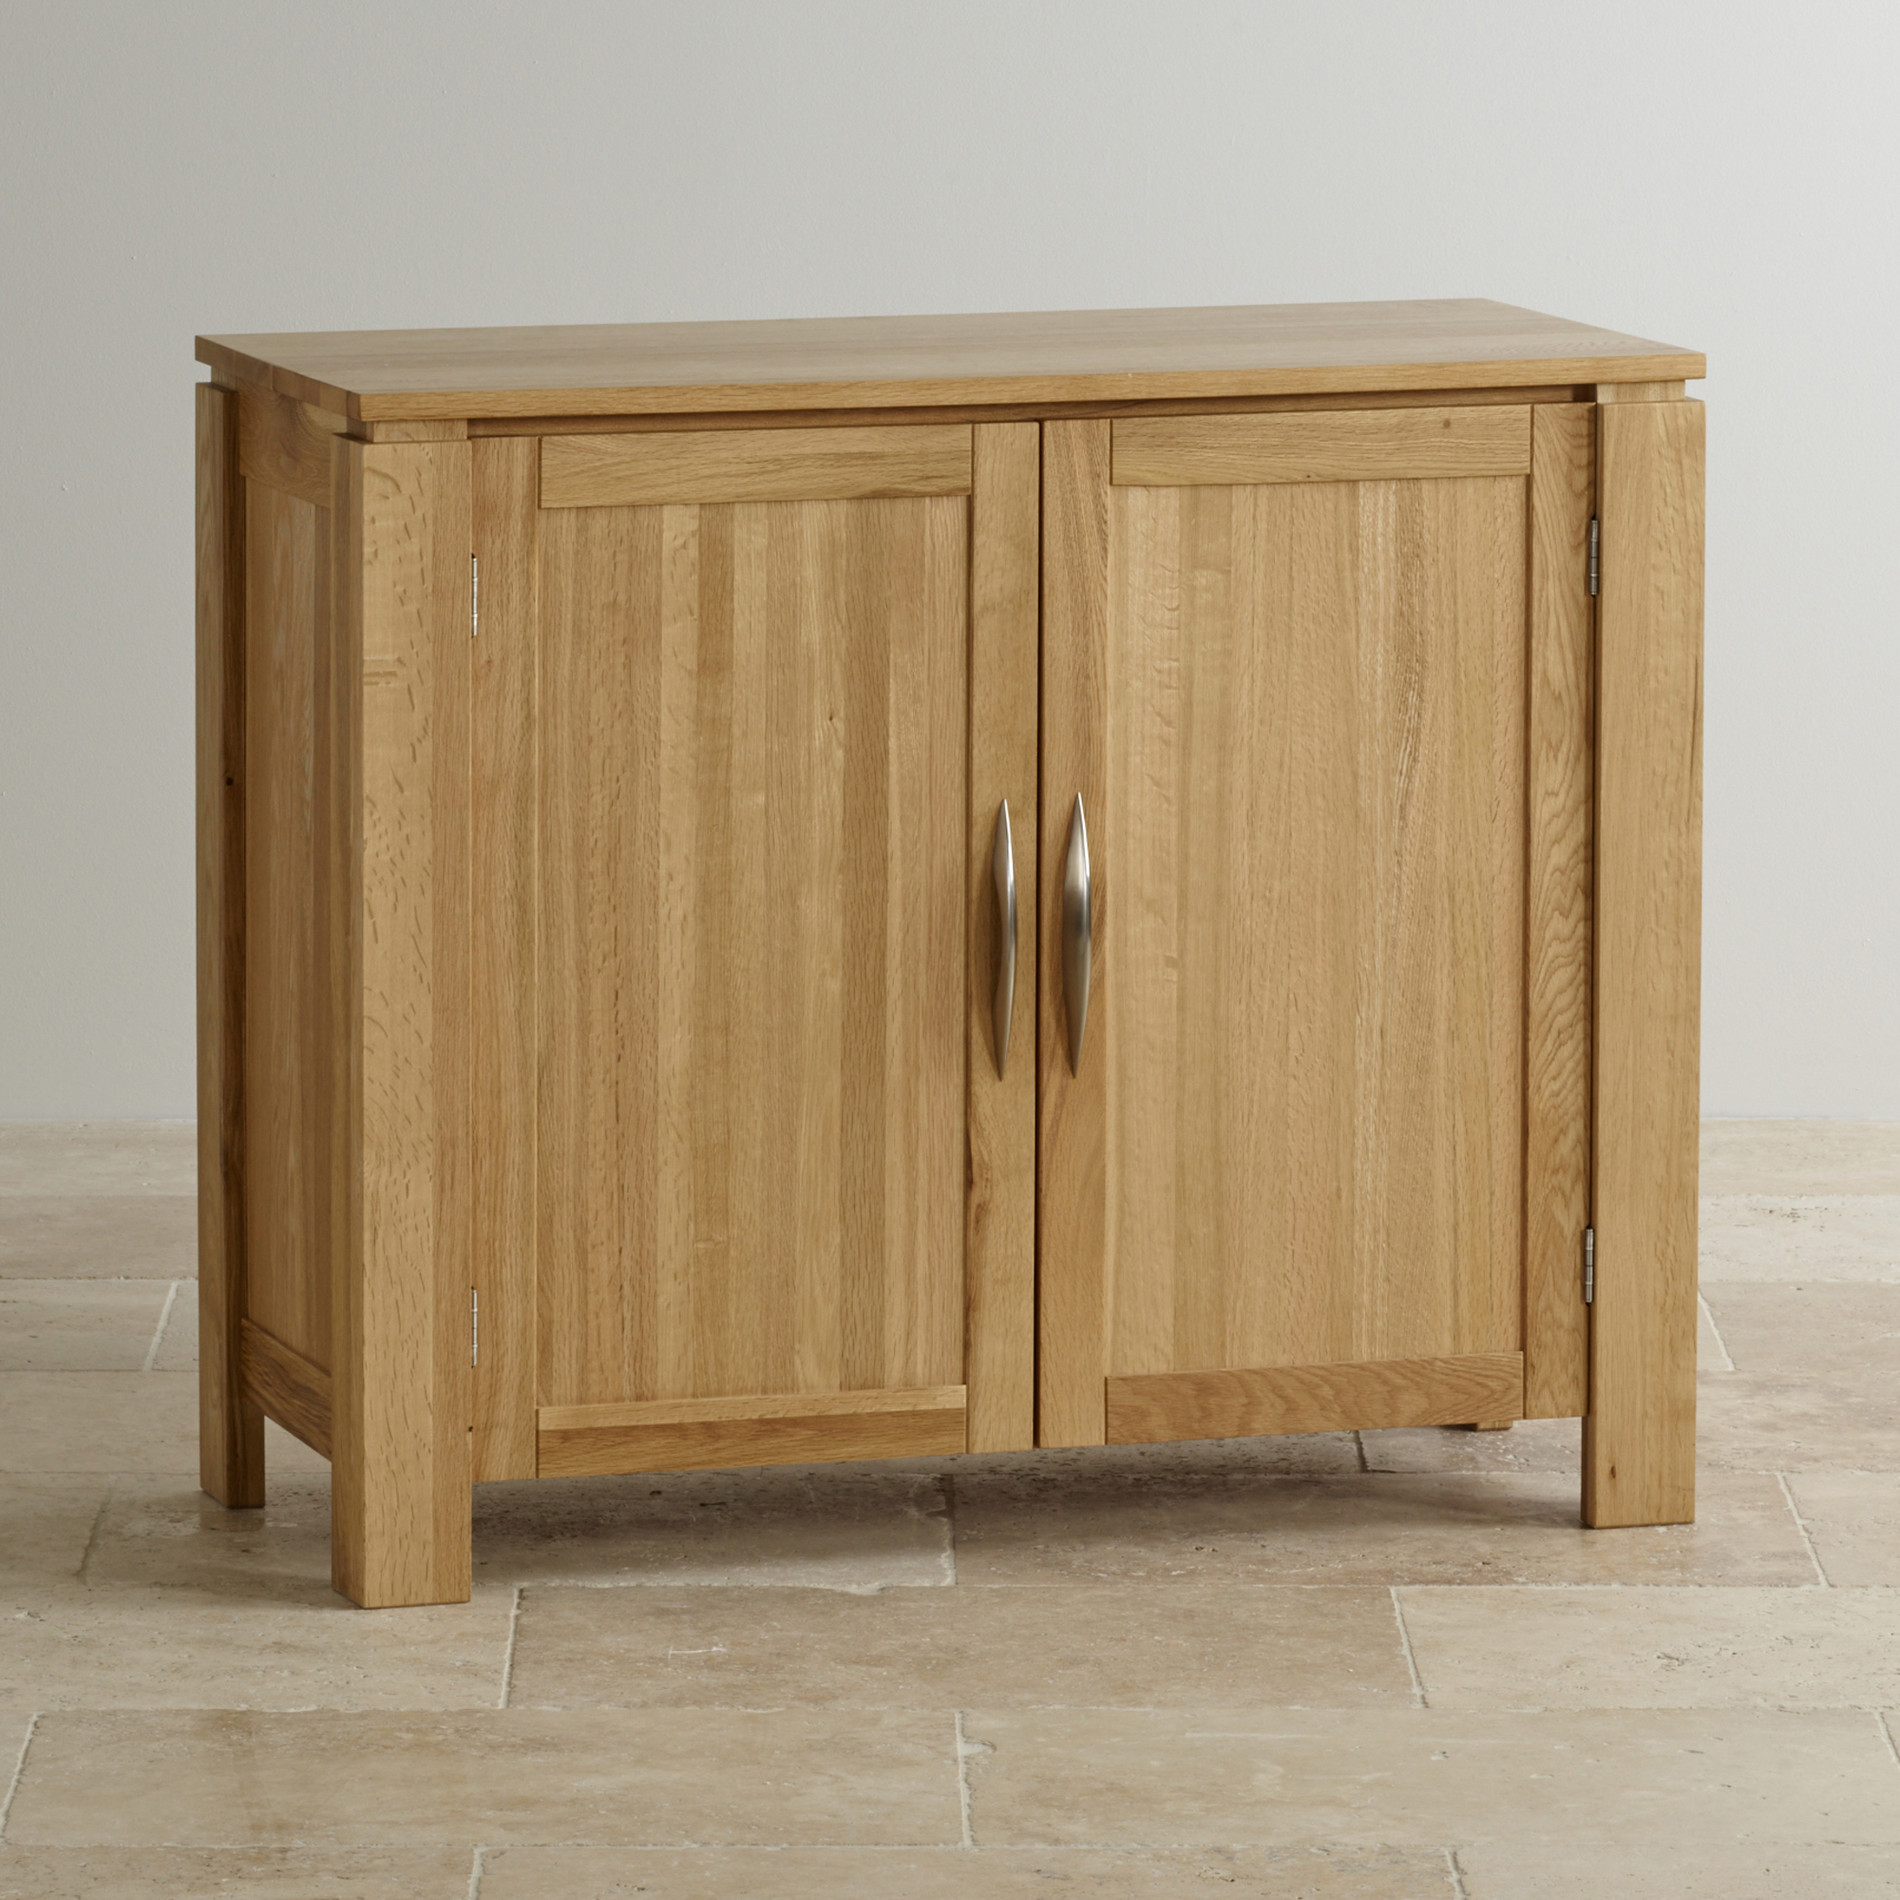 Galway small sideboard in natural solid oak